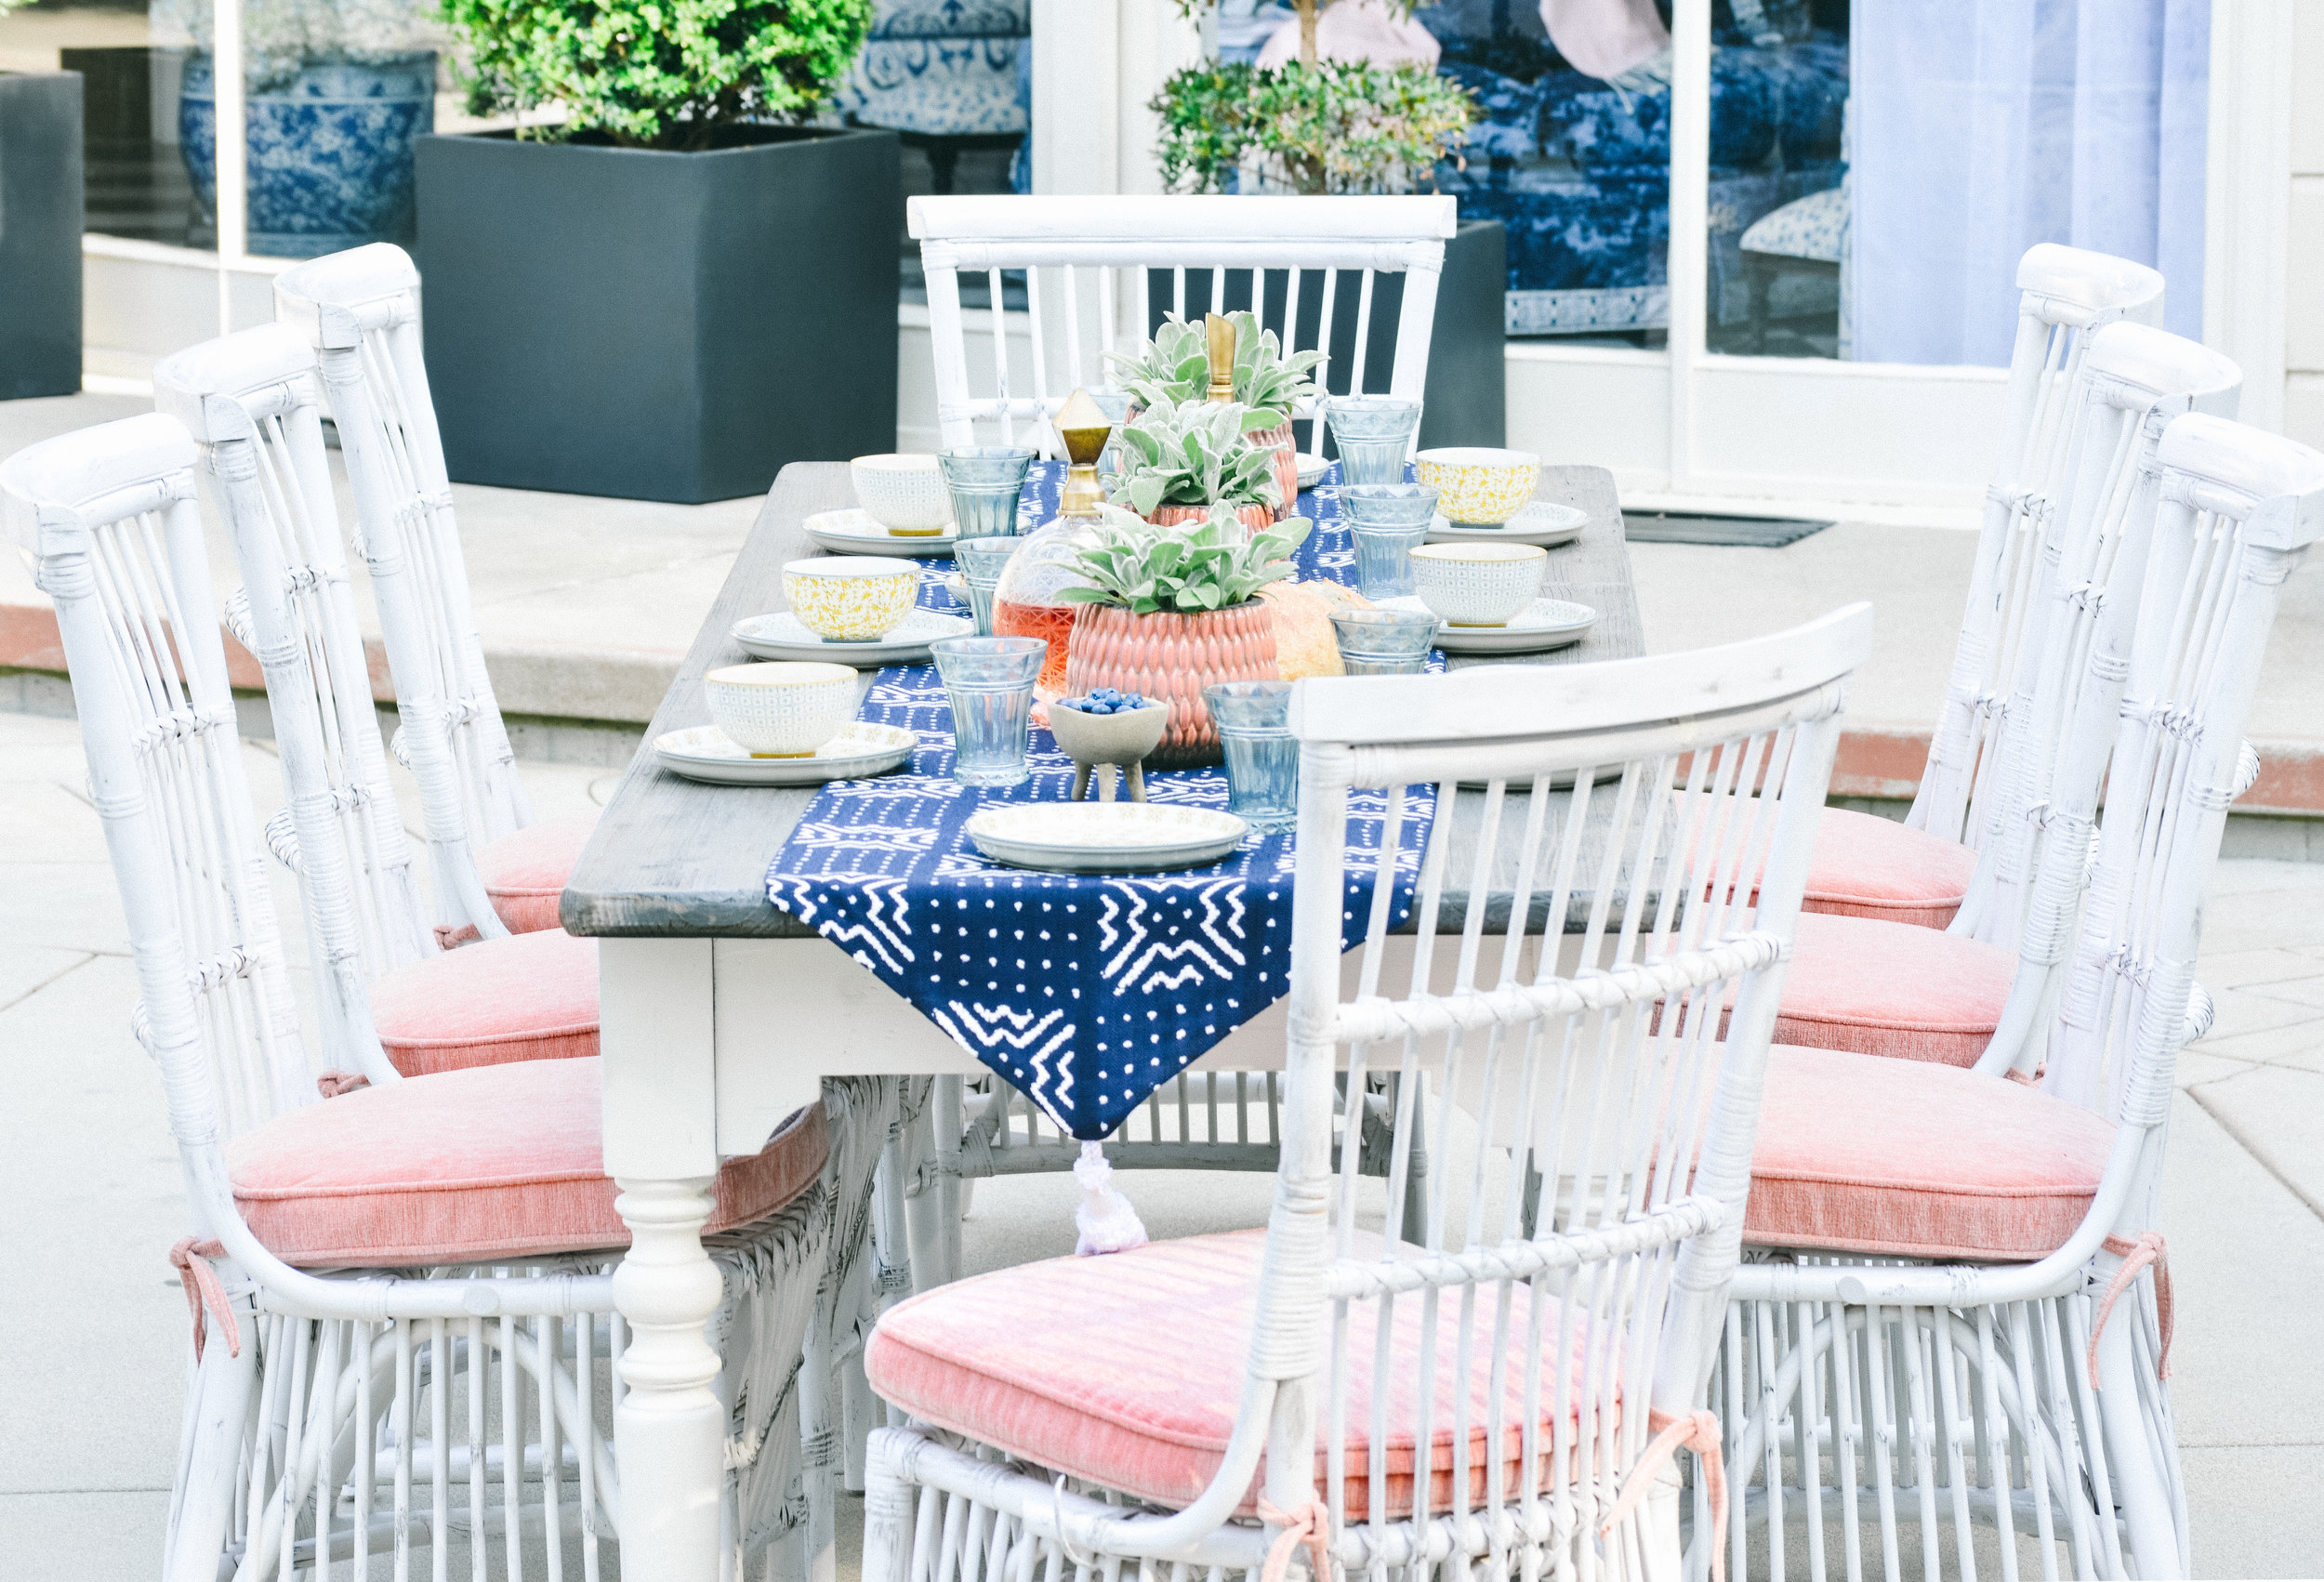 Outdoor dining area with styling